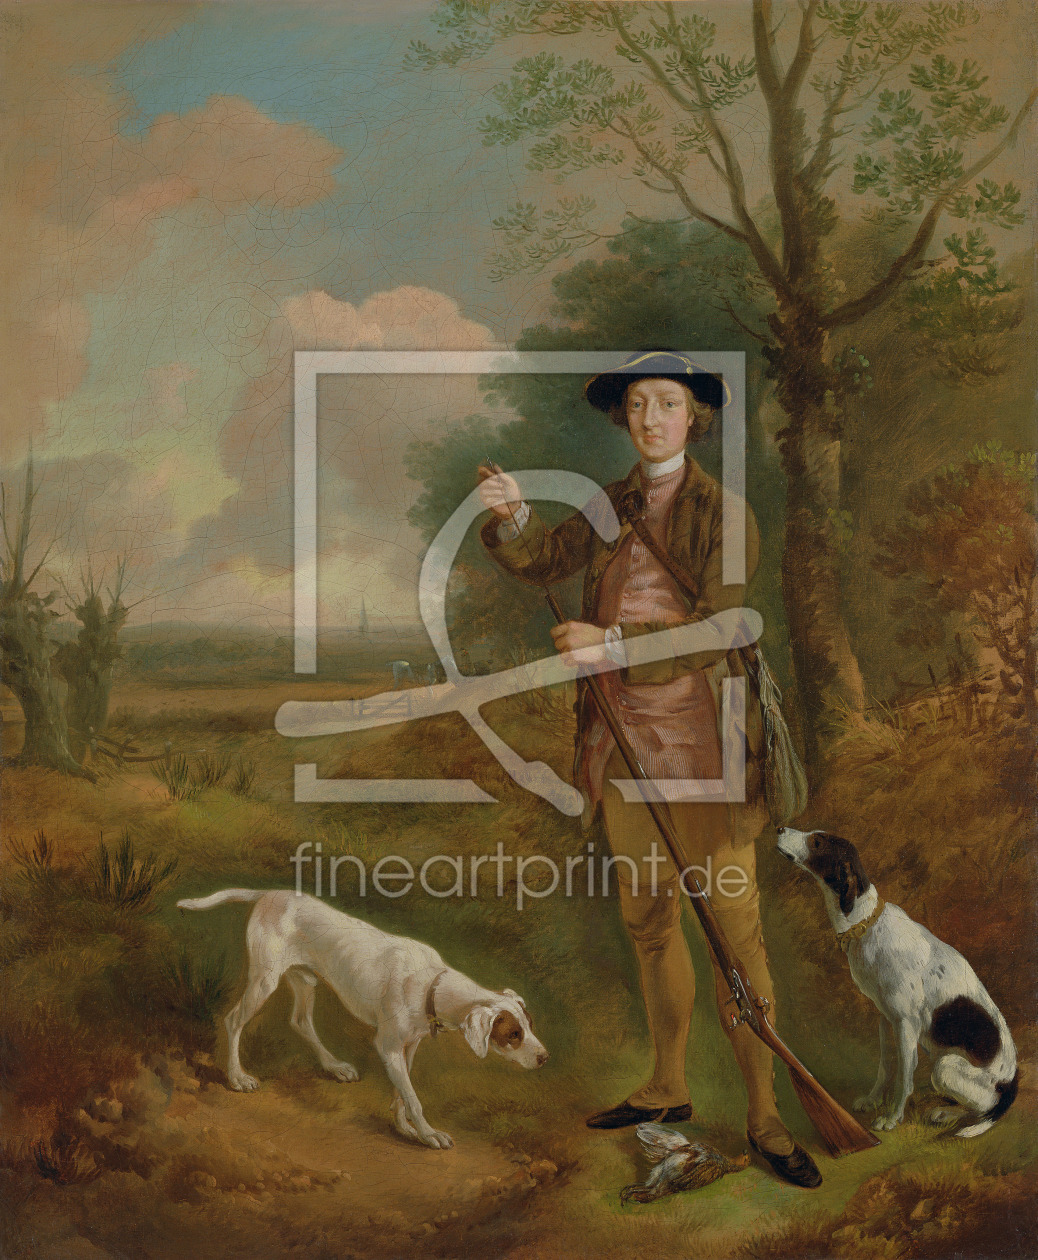 Bild-Nr.: 31000441 Major John Dade of Tannington, Suffolk, c.1755 erstellt von Gainsborough, Thomas